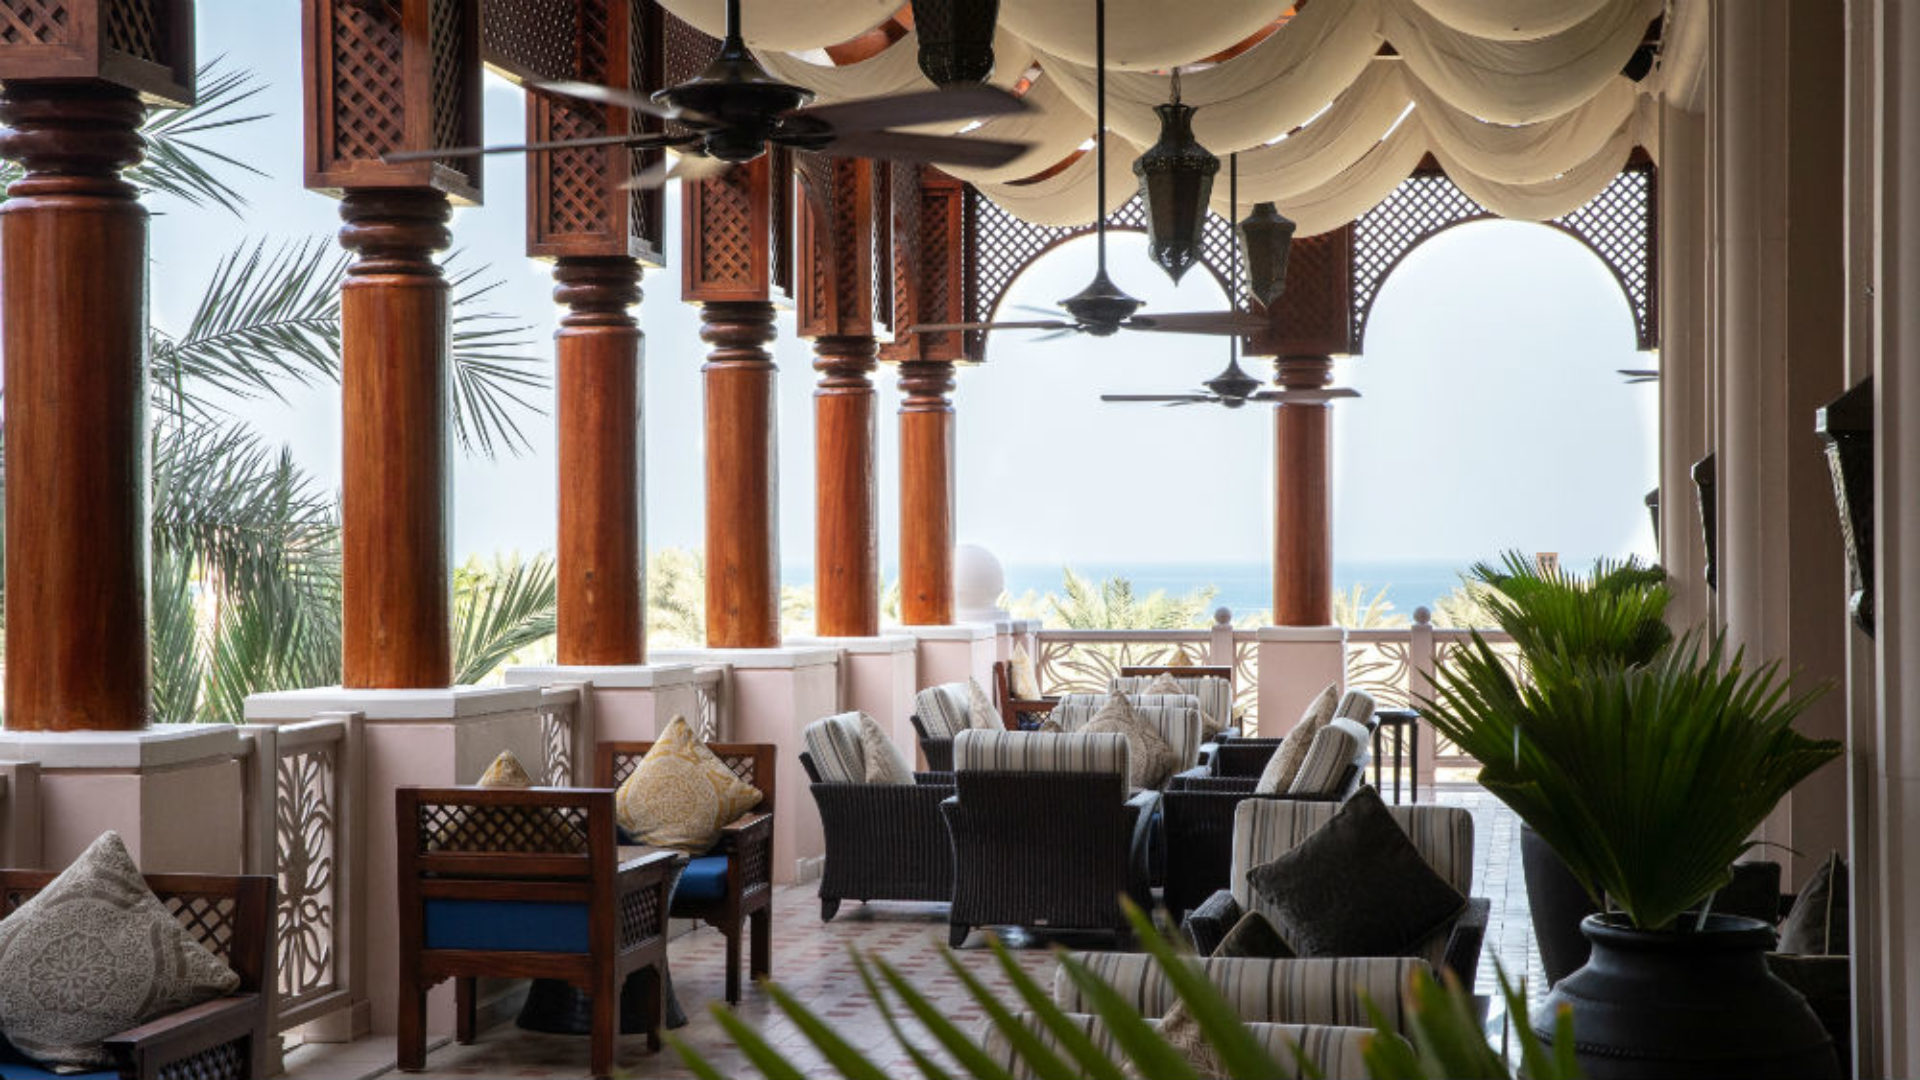 Al Fayrooz Lounge at the Jumeirah Al Qasr